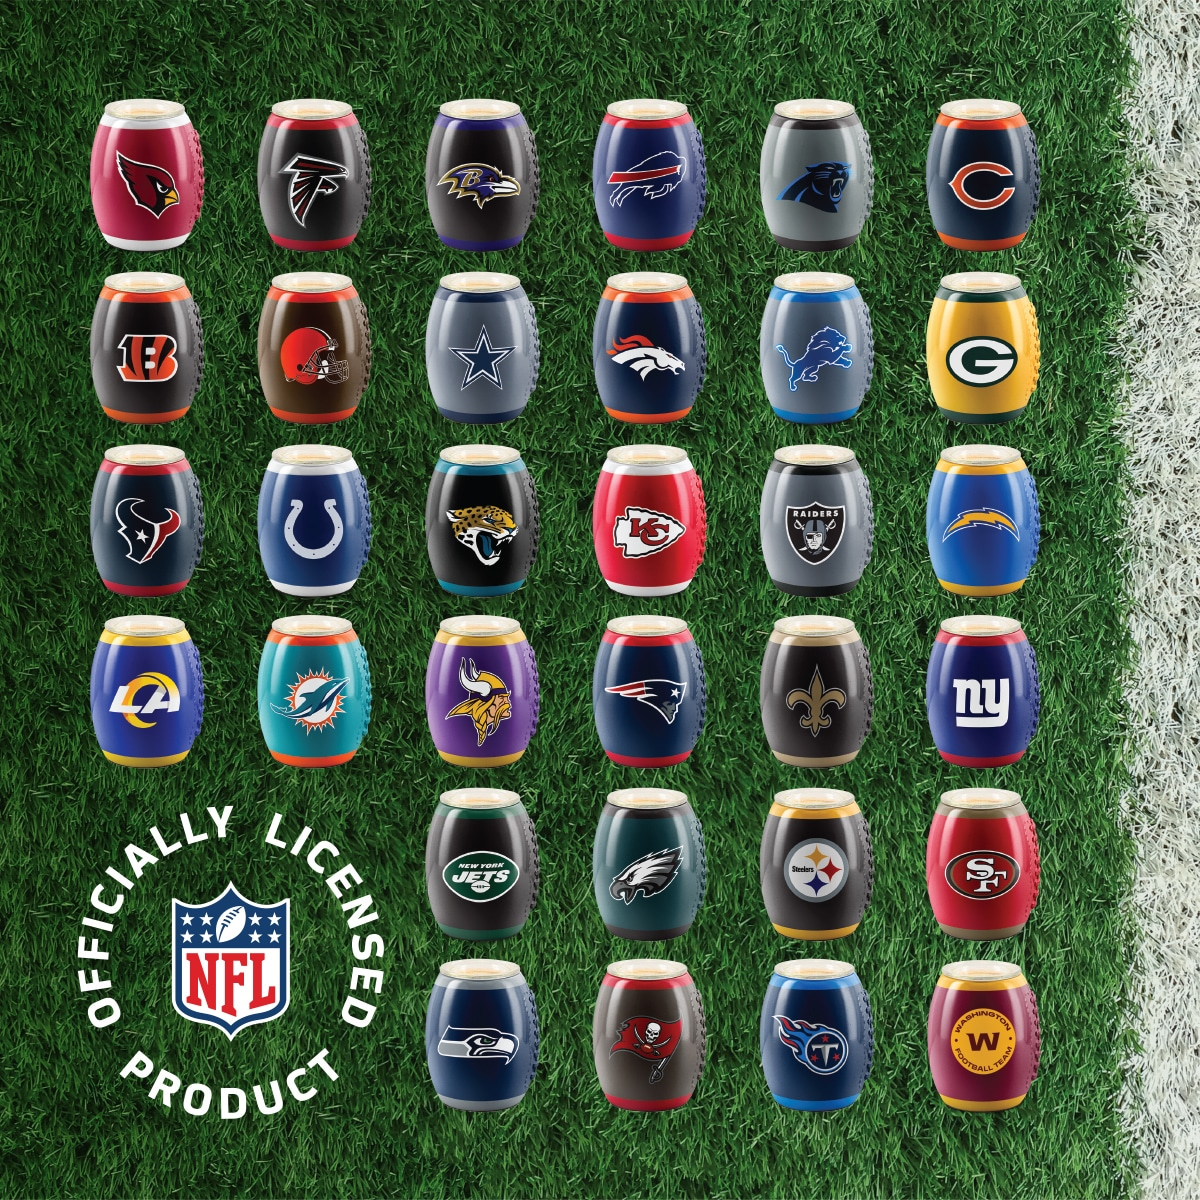 NFL WARMER FULL SIZE SCENTSY COLLECTION 1